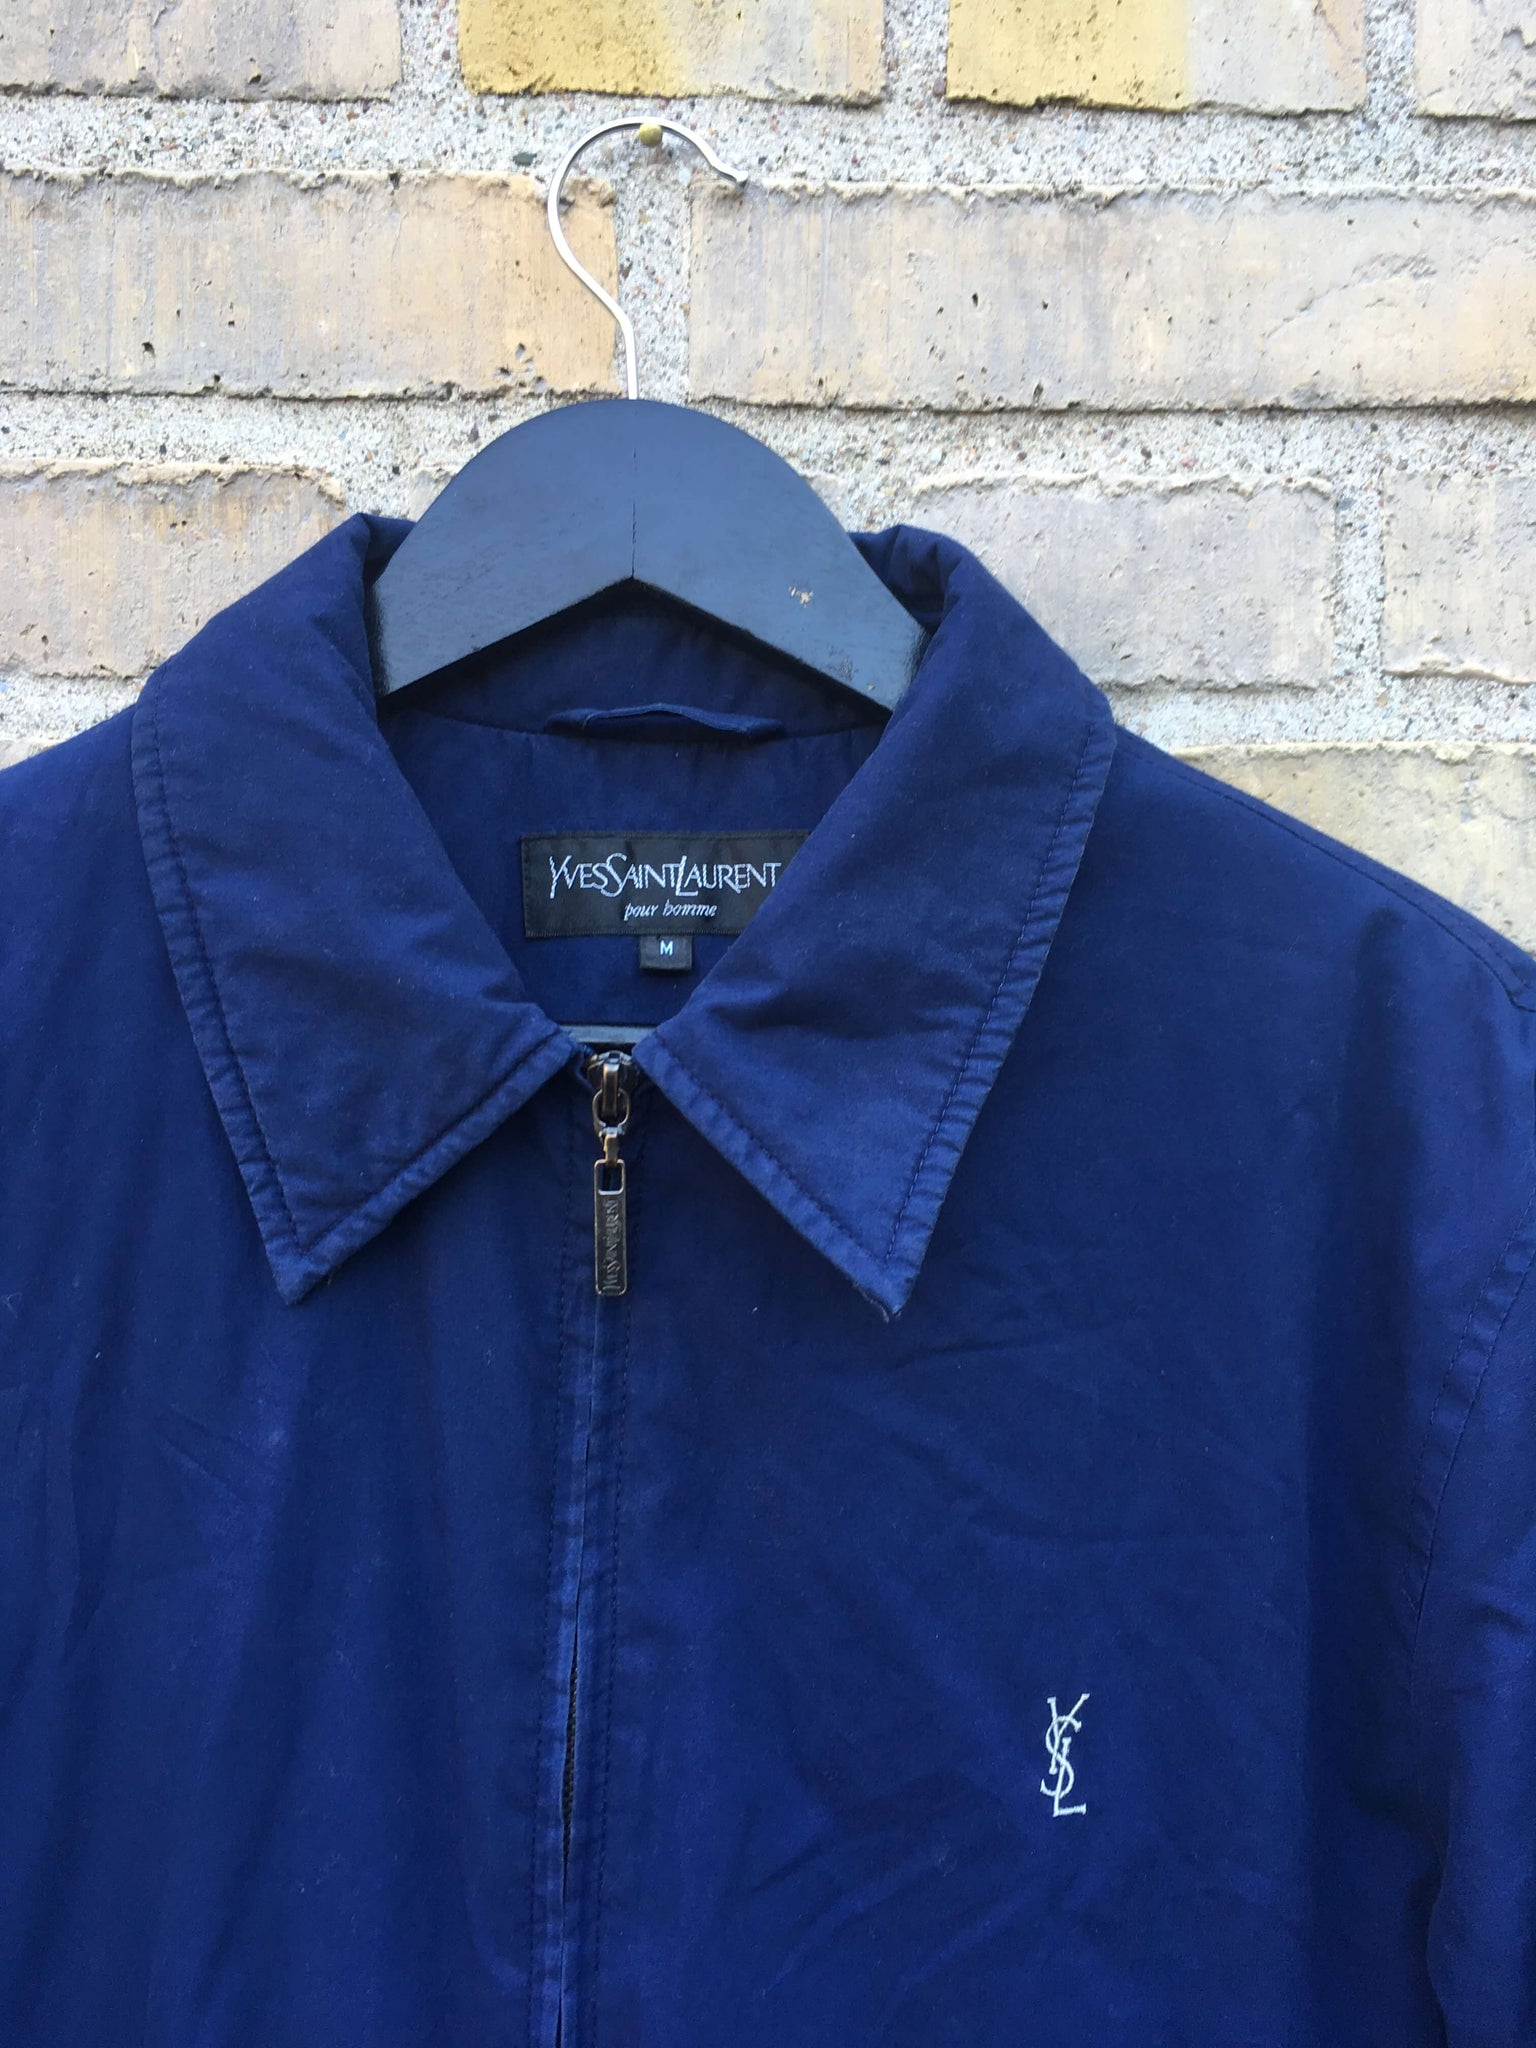 Vintage Yves Saint Laurent Harringtonjakke, Medium